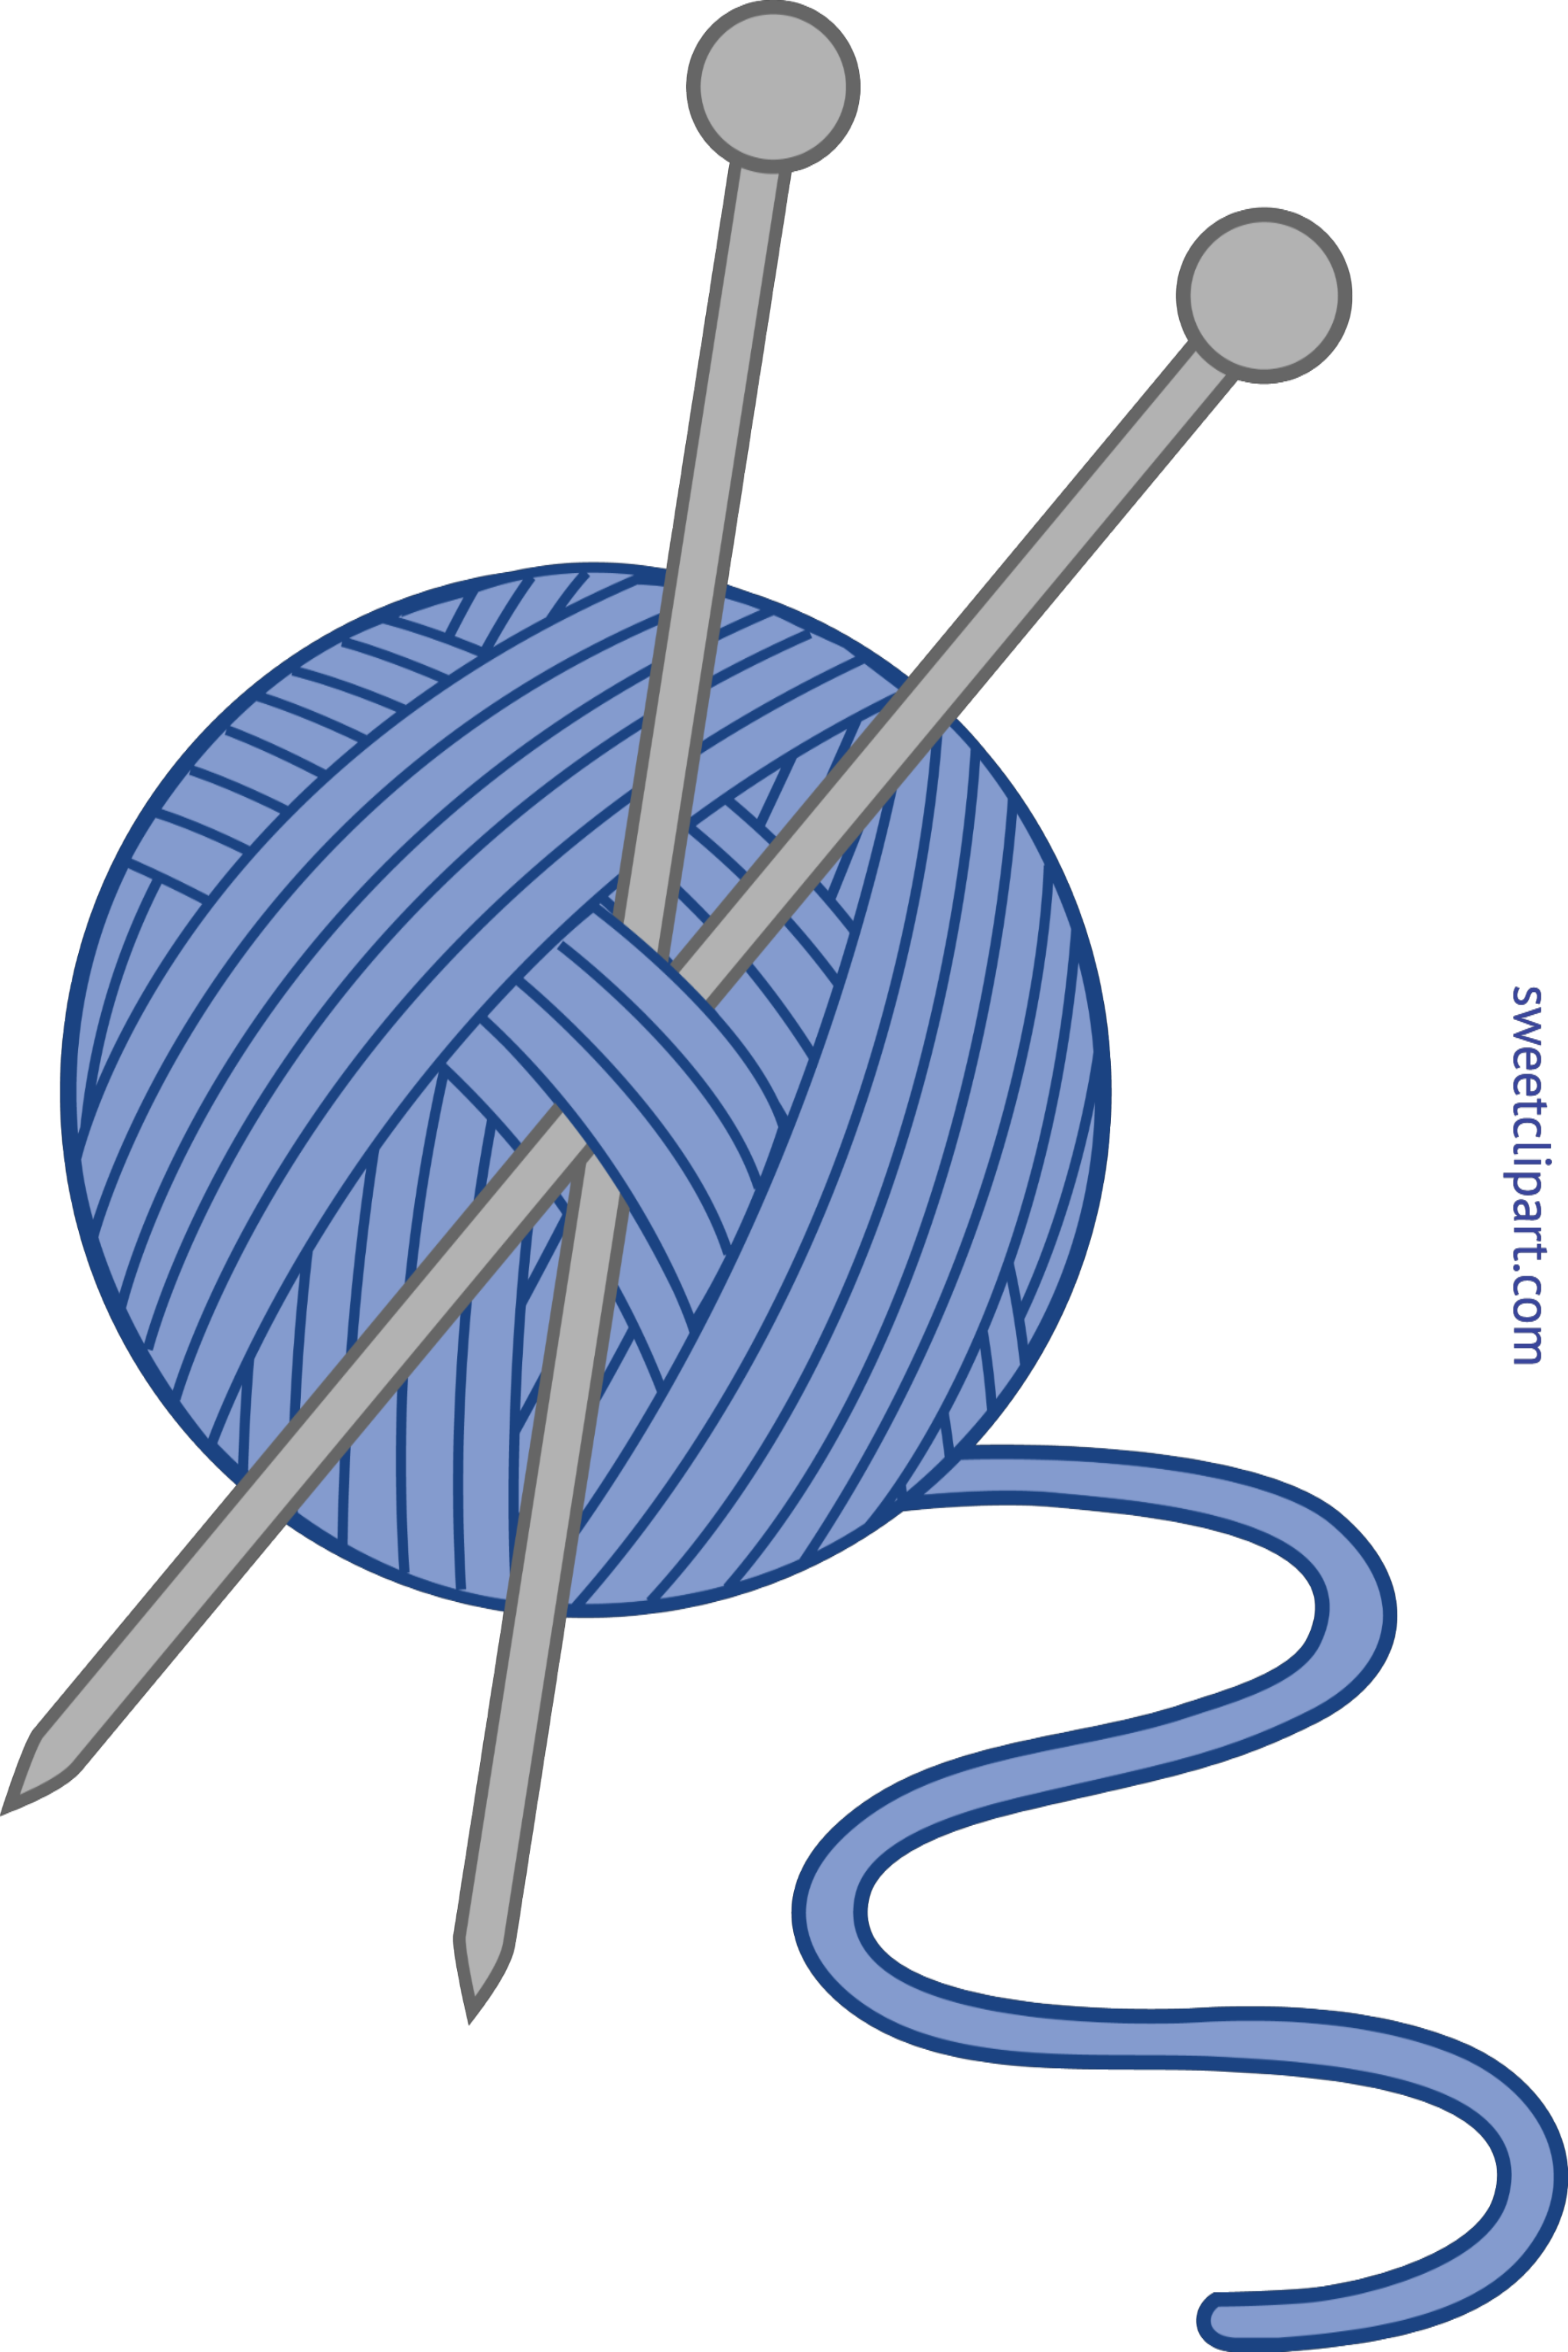 Knitting at getdrawings com. Quilting clipart thread